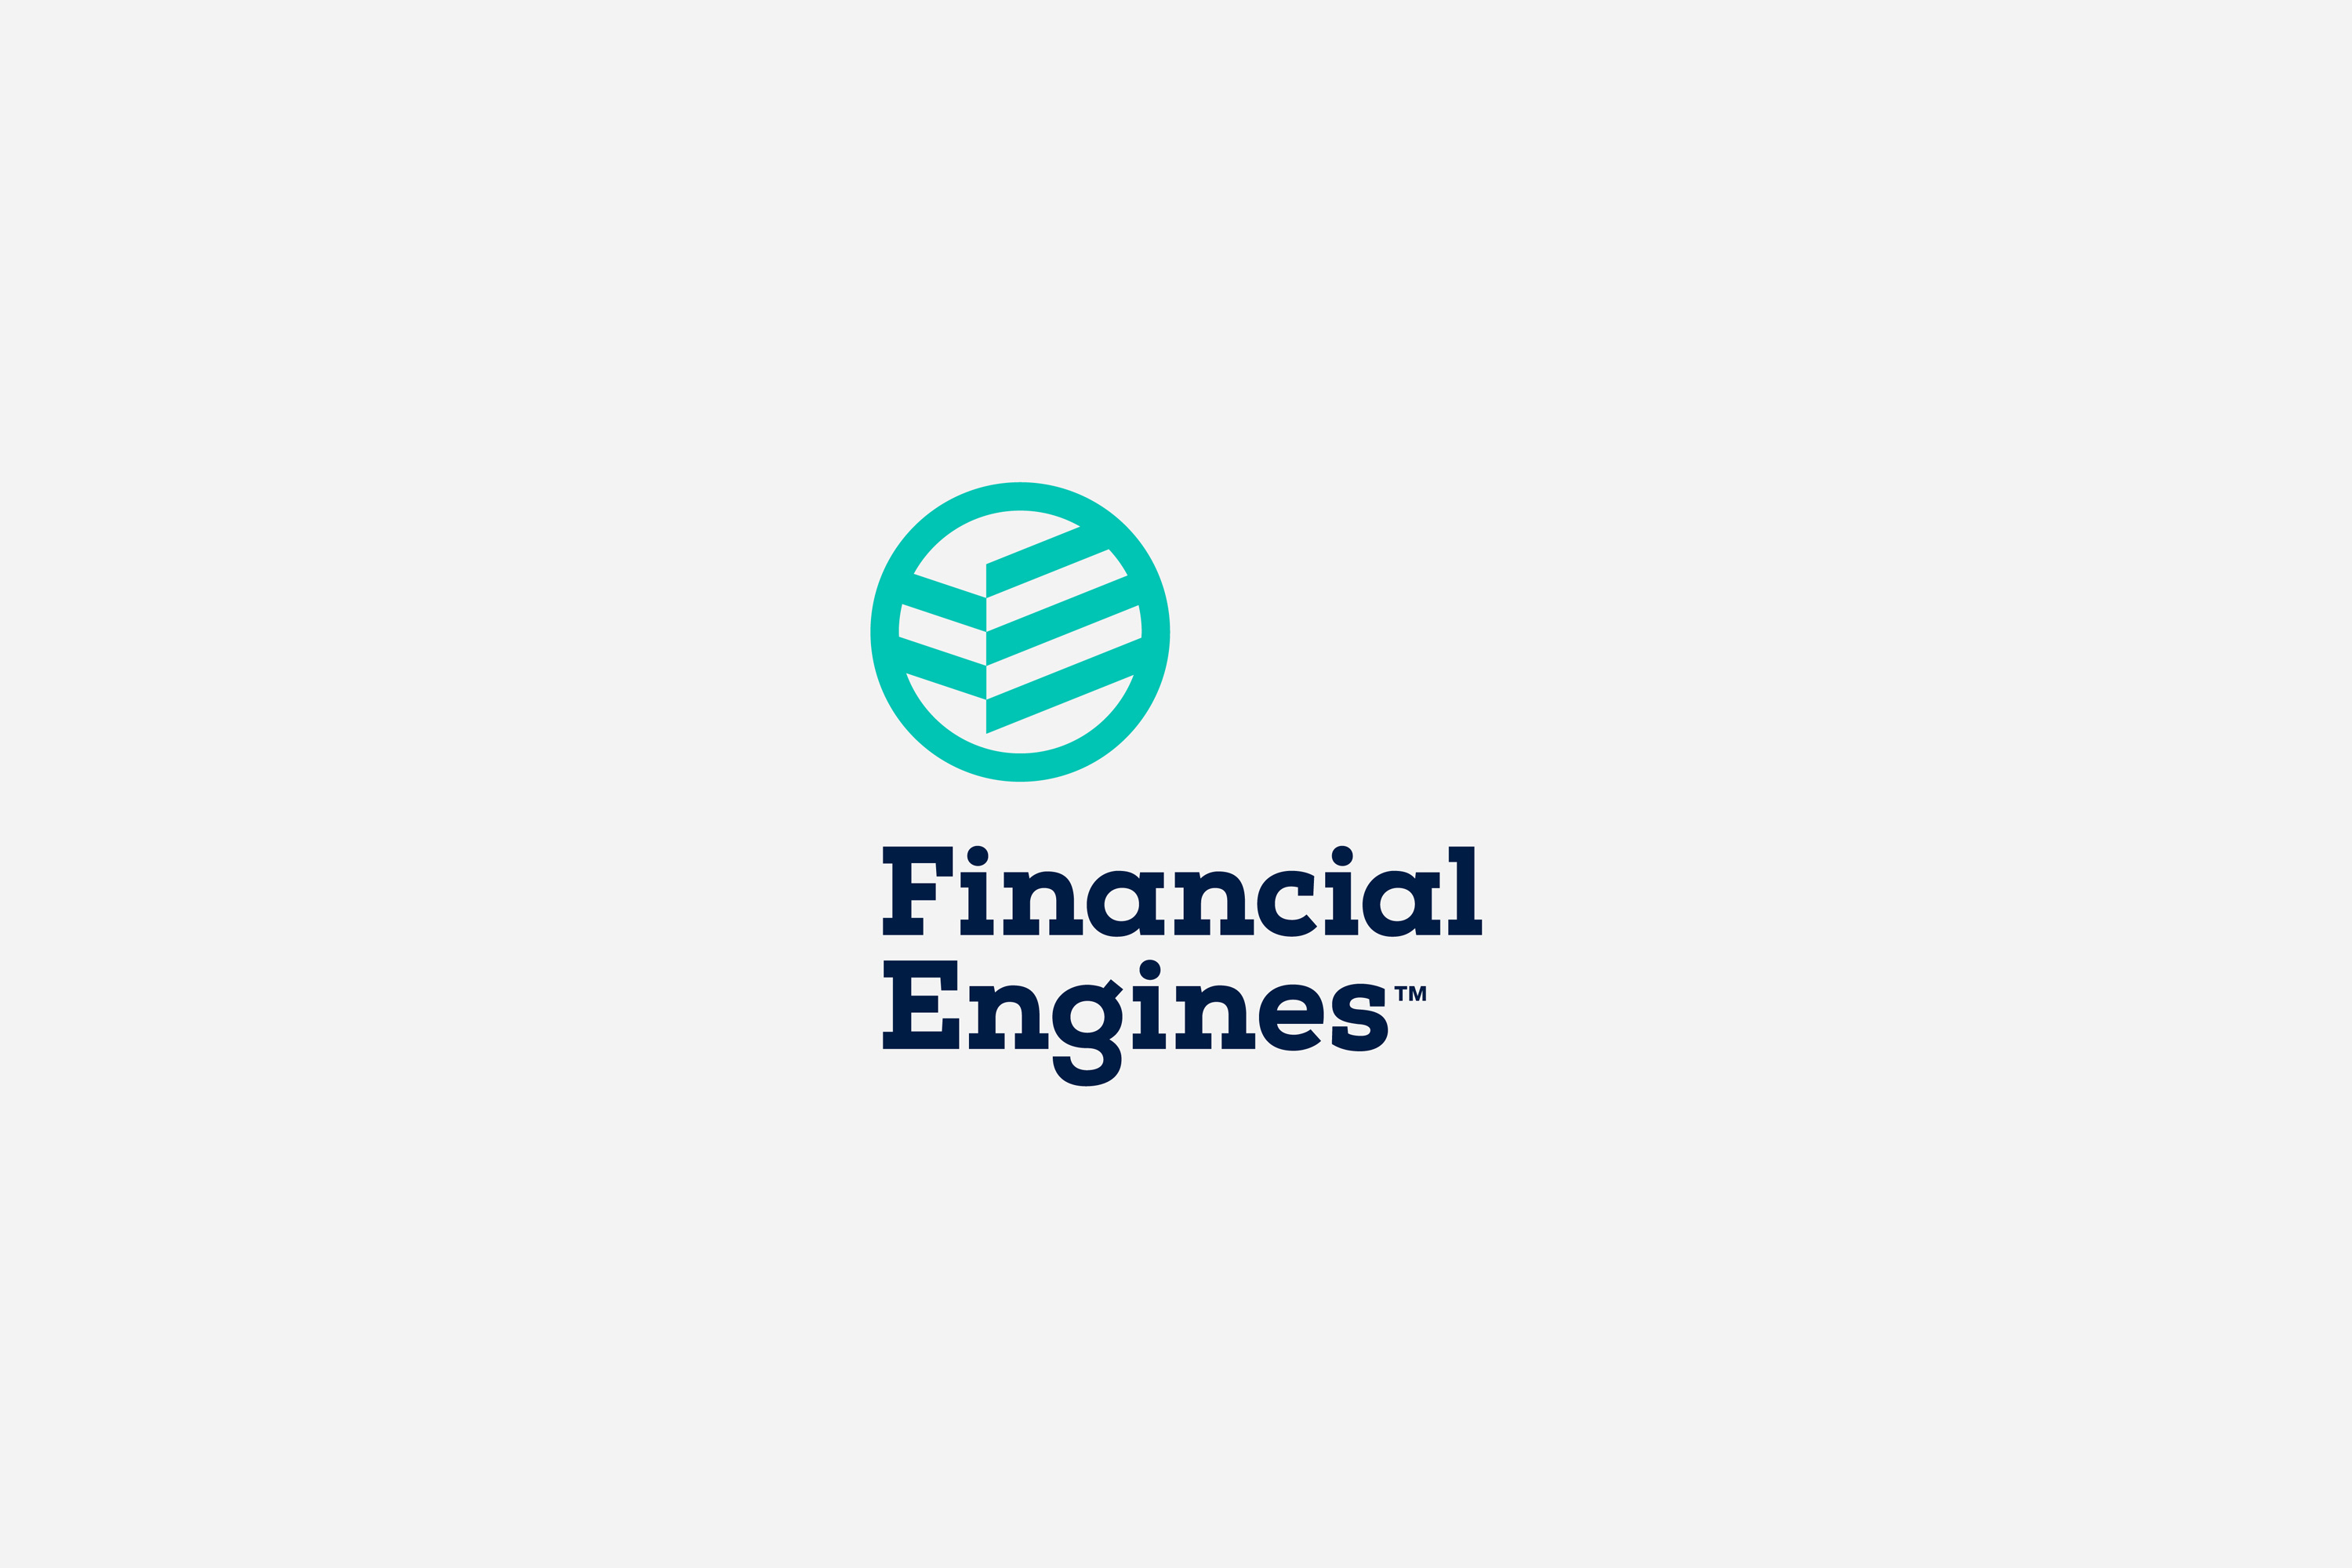 Financial_Engines_03